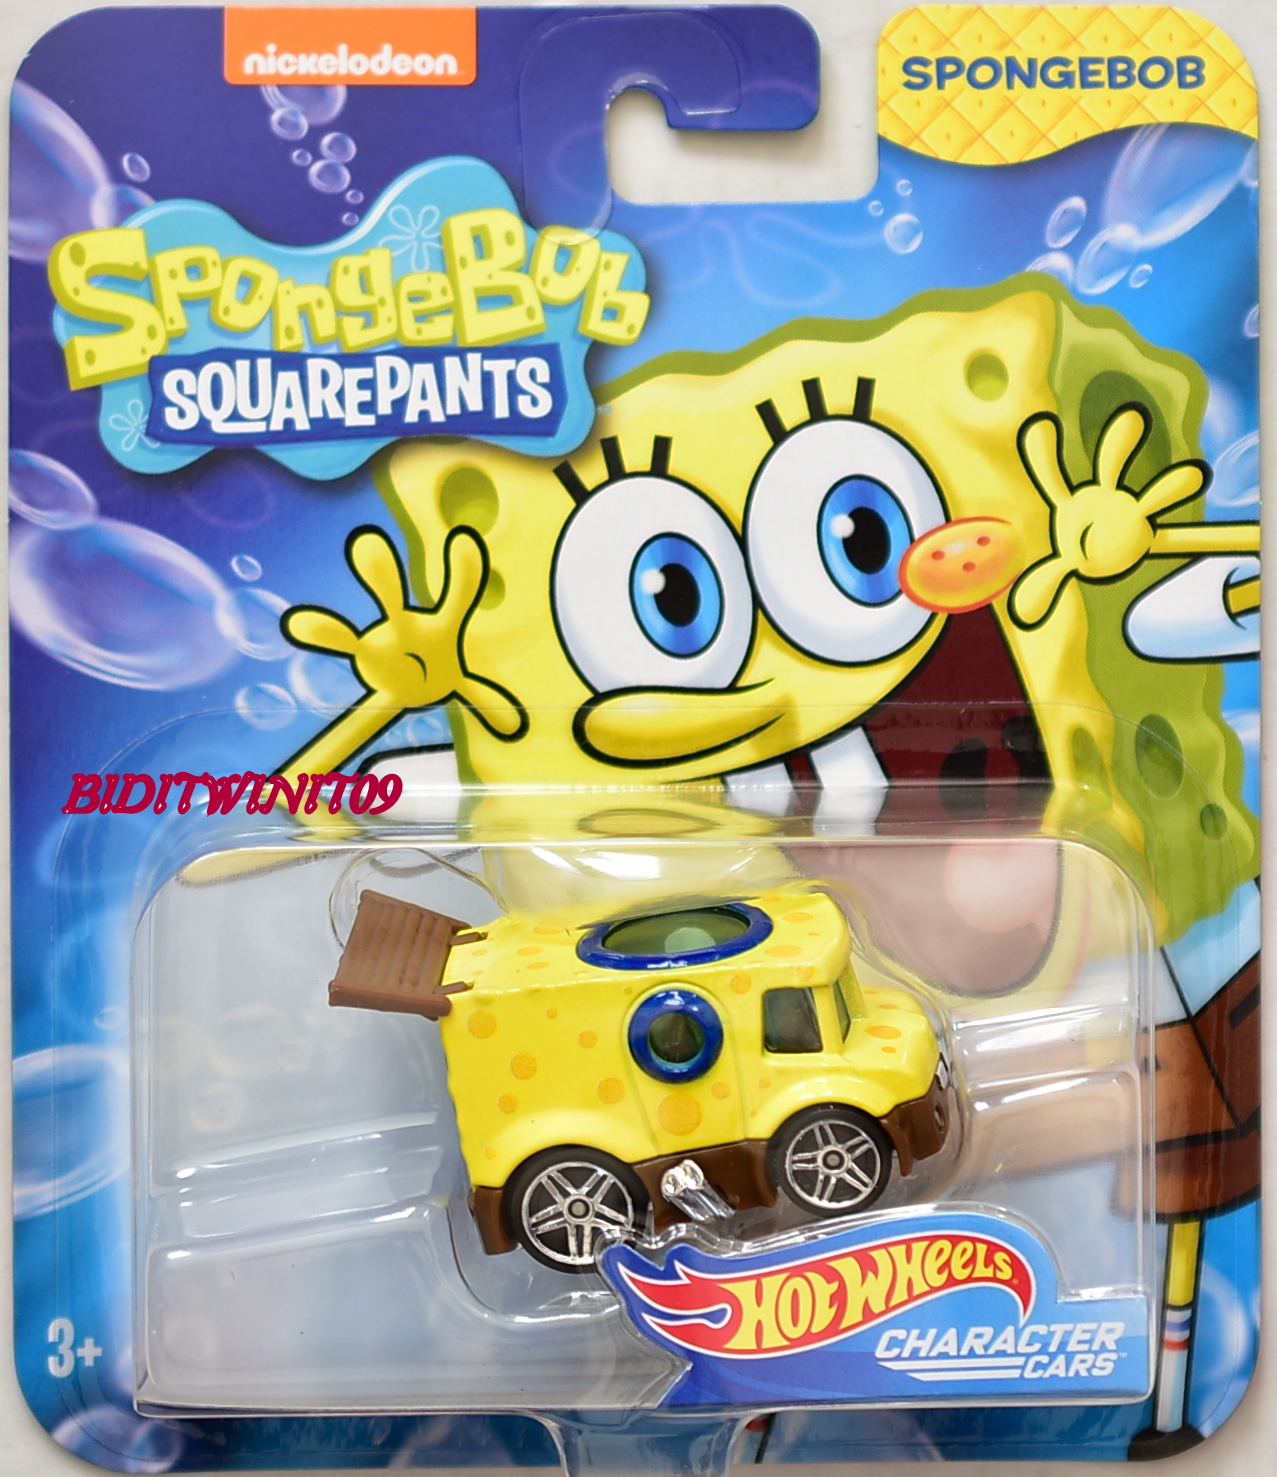 HOT WHEELS SPONGEBOB SQUAREPANTS CHARACTER CARS YELLOW